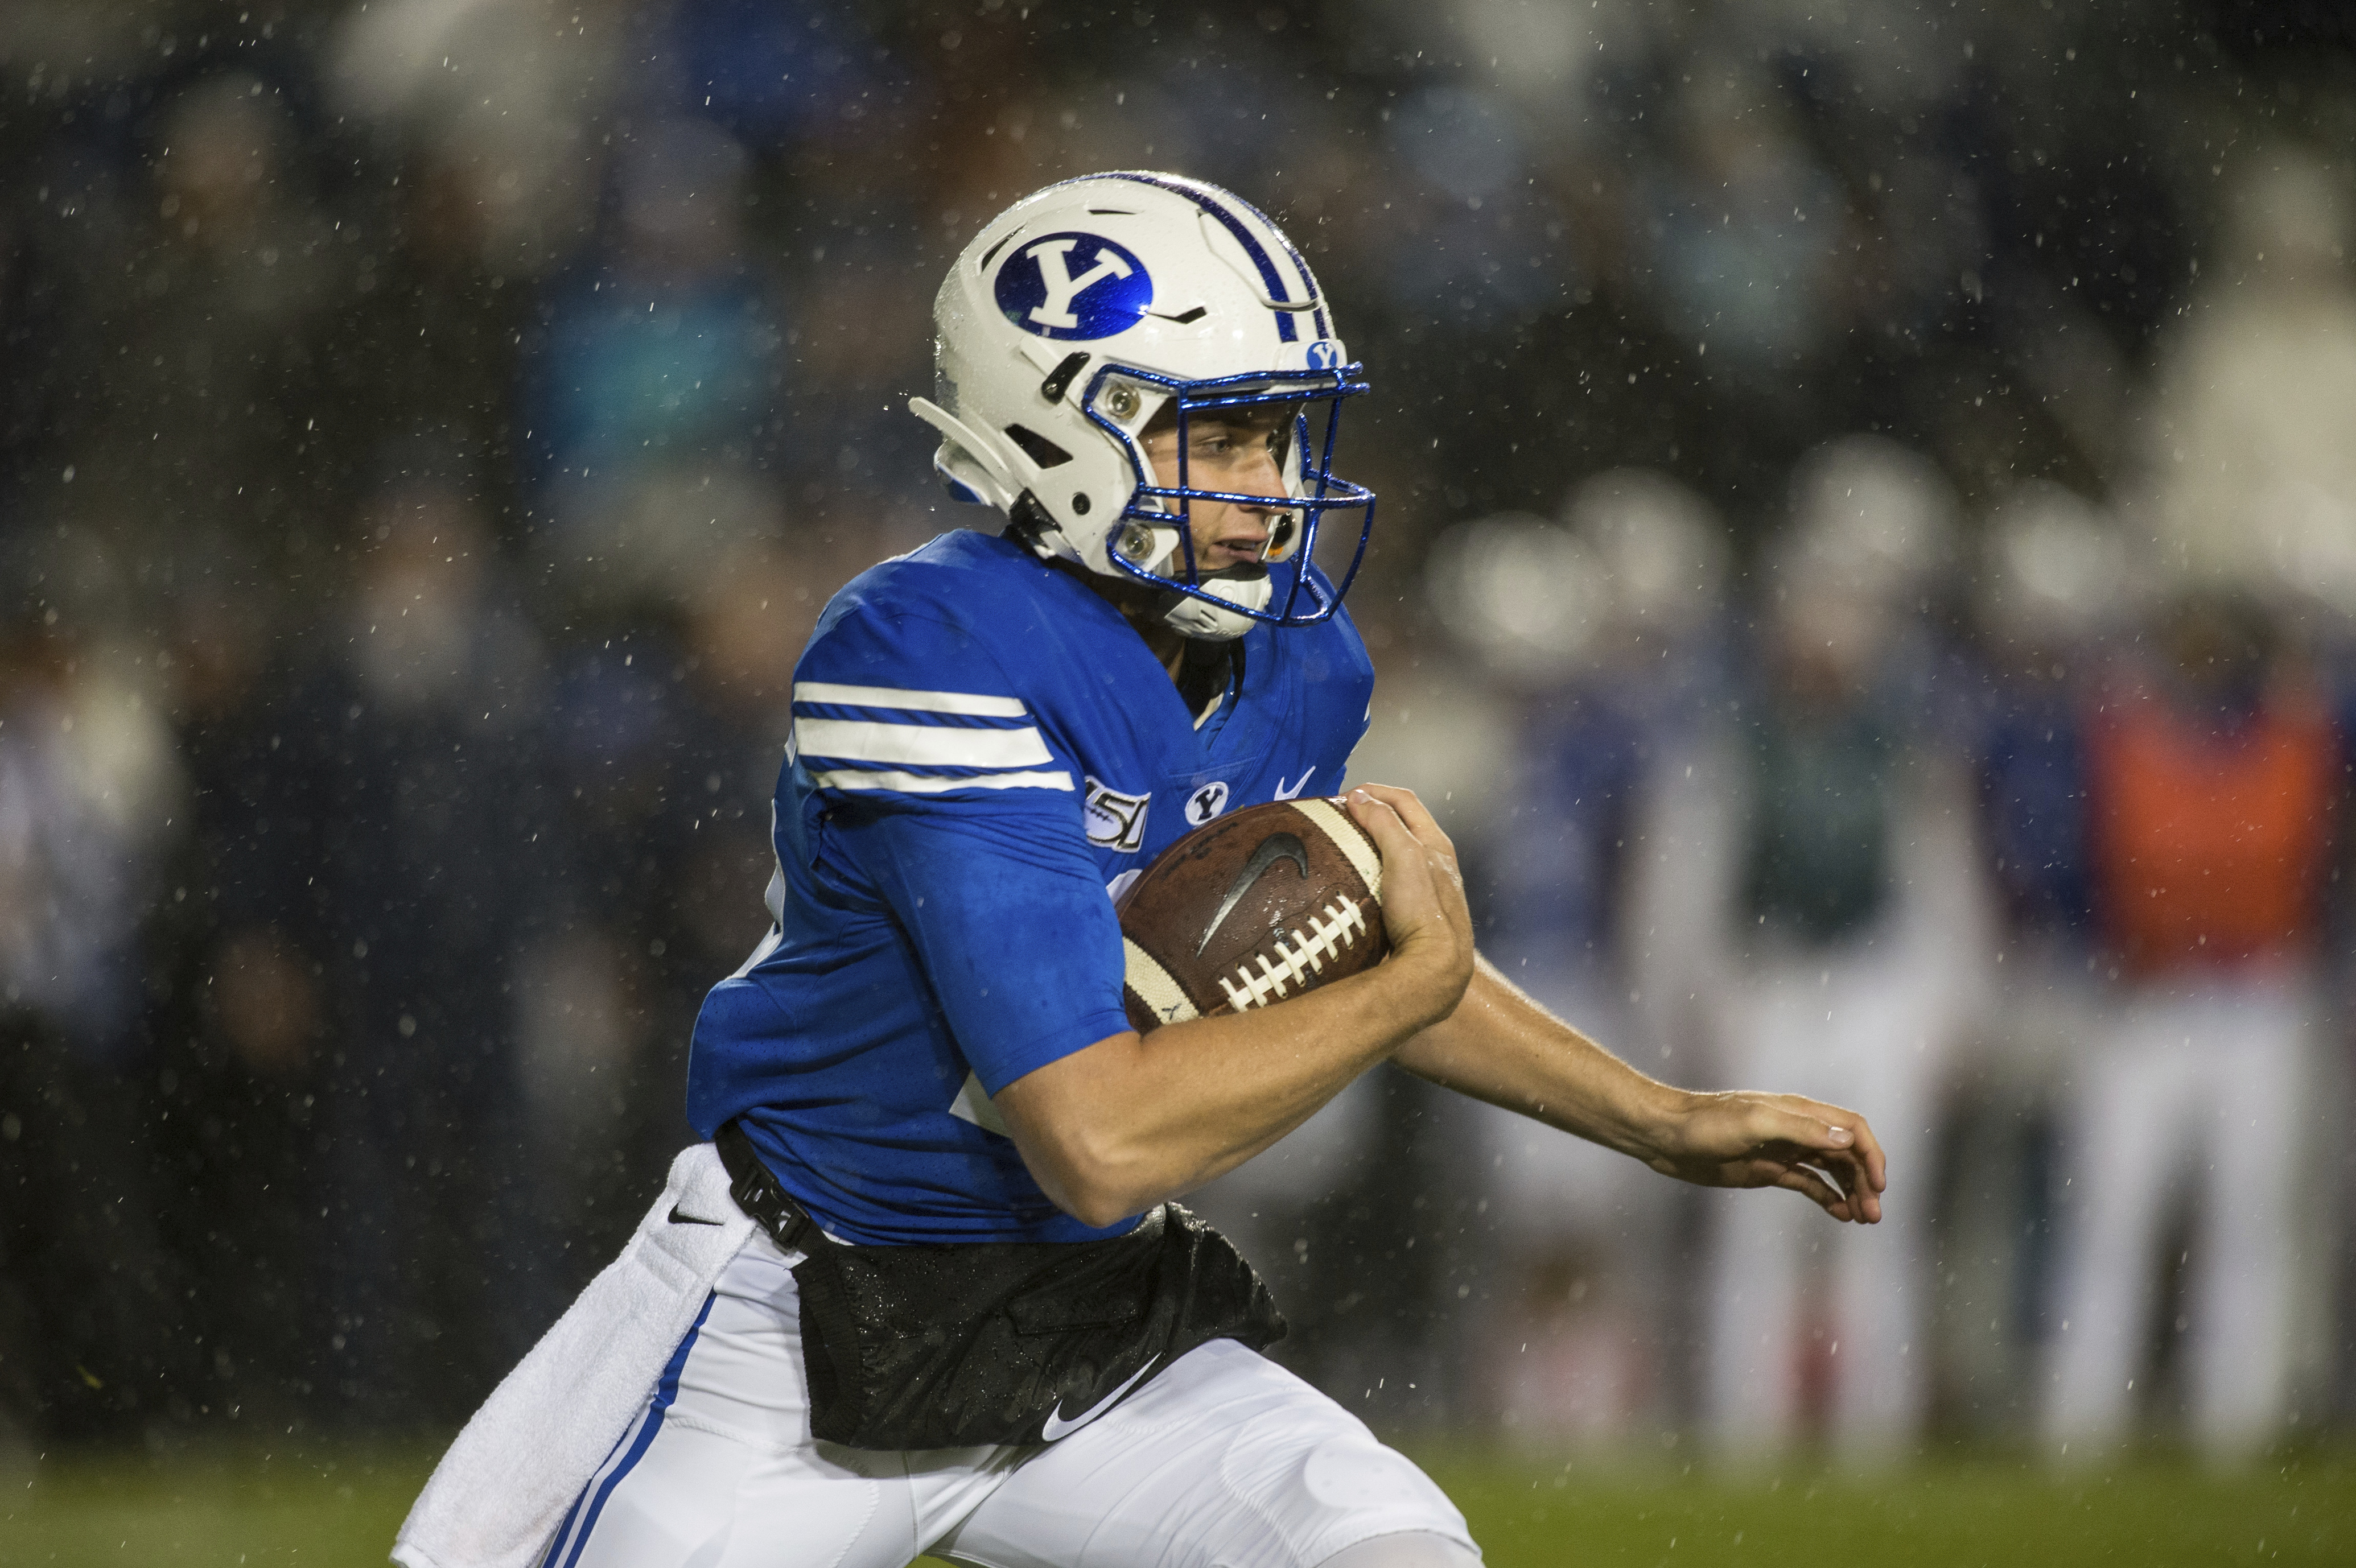 BYU upsets No. 14 Boise State 28-25